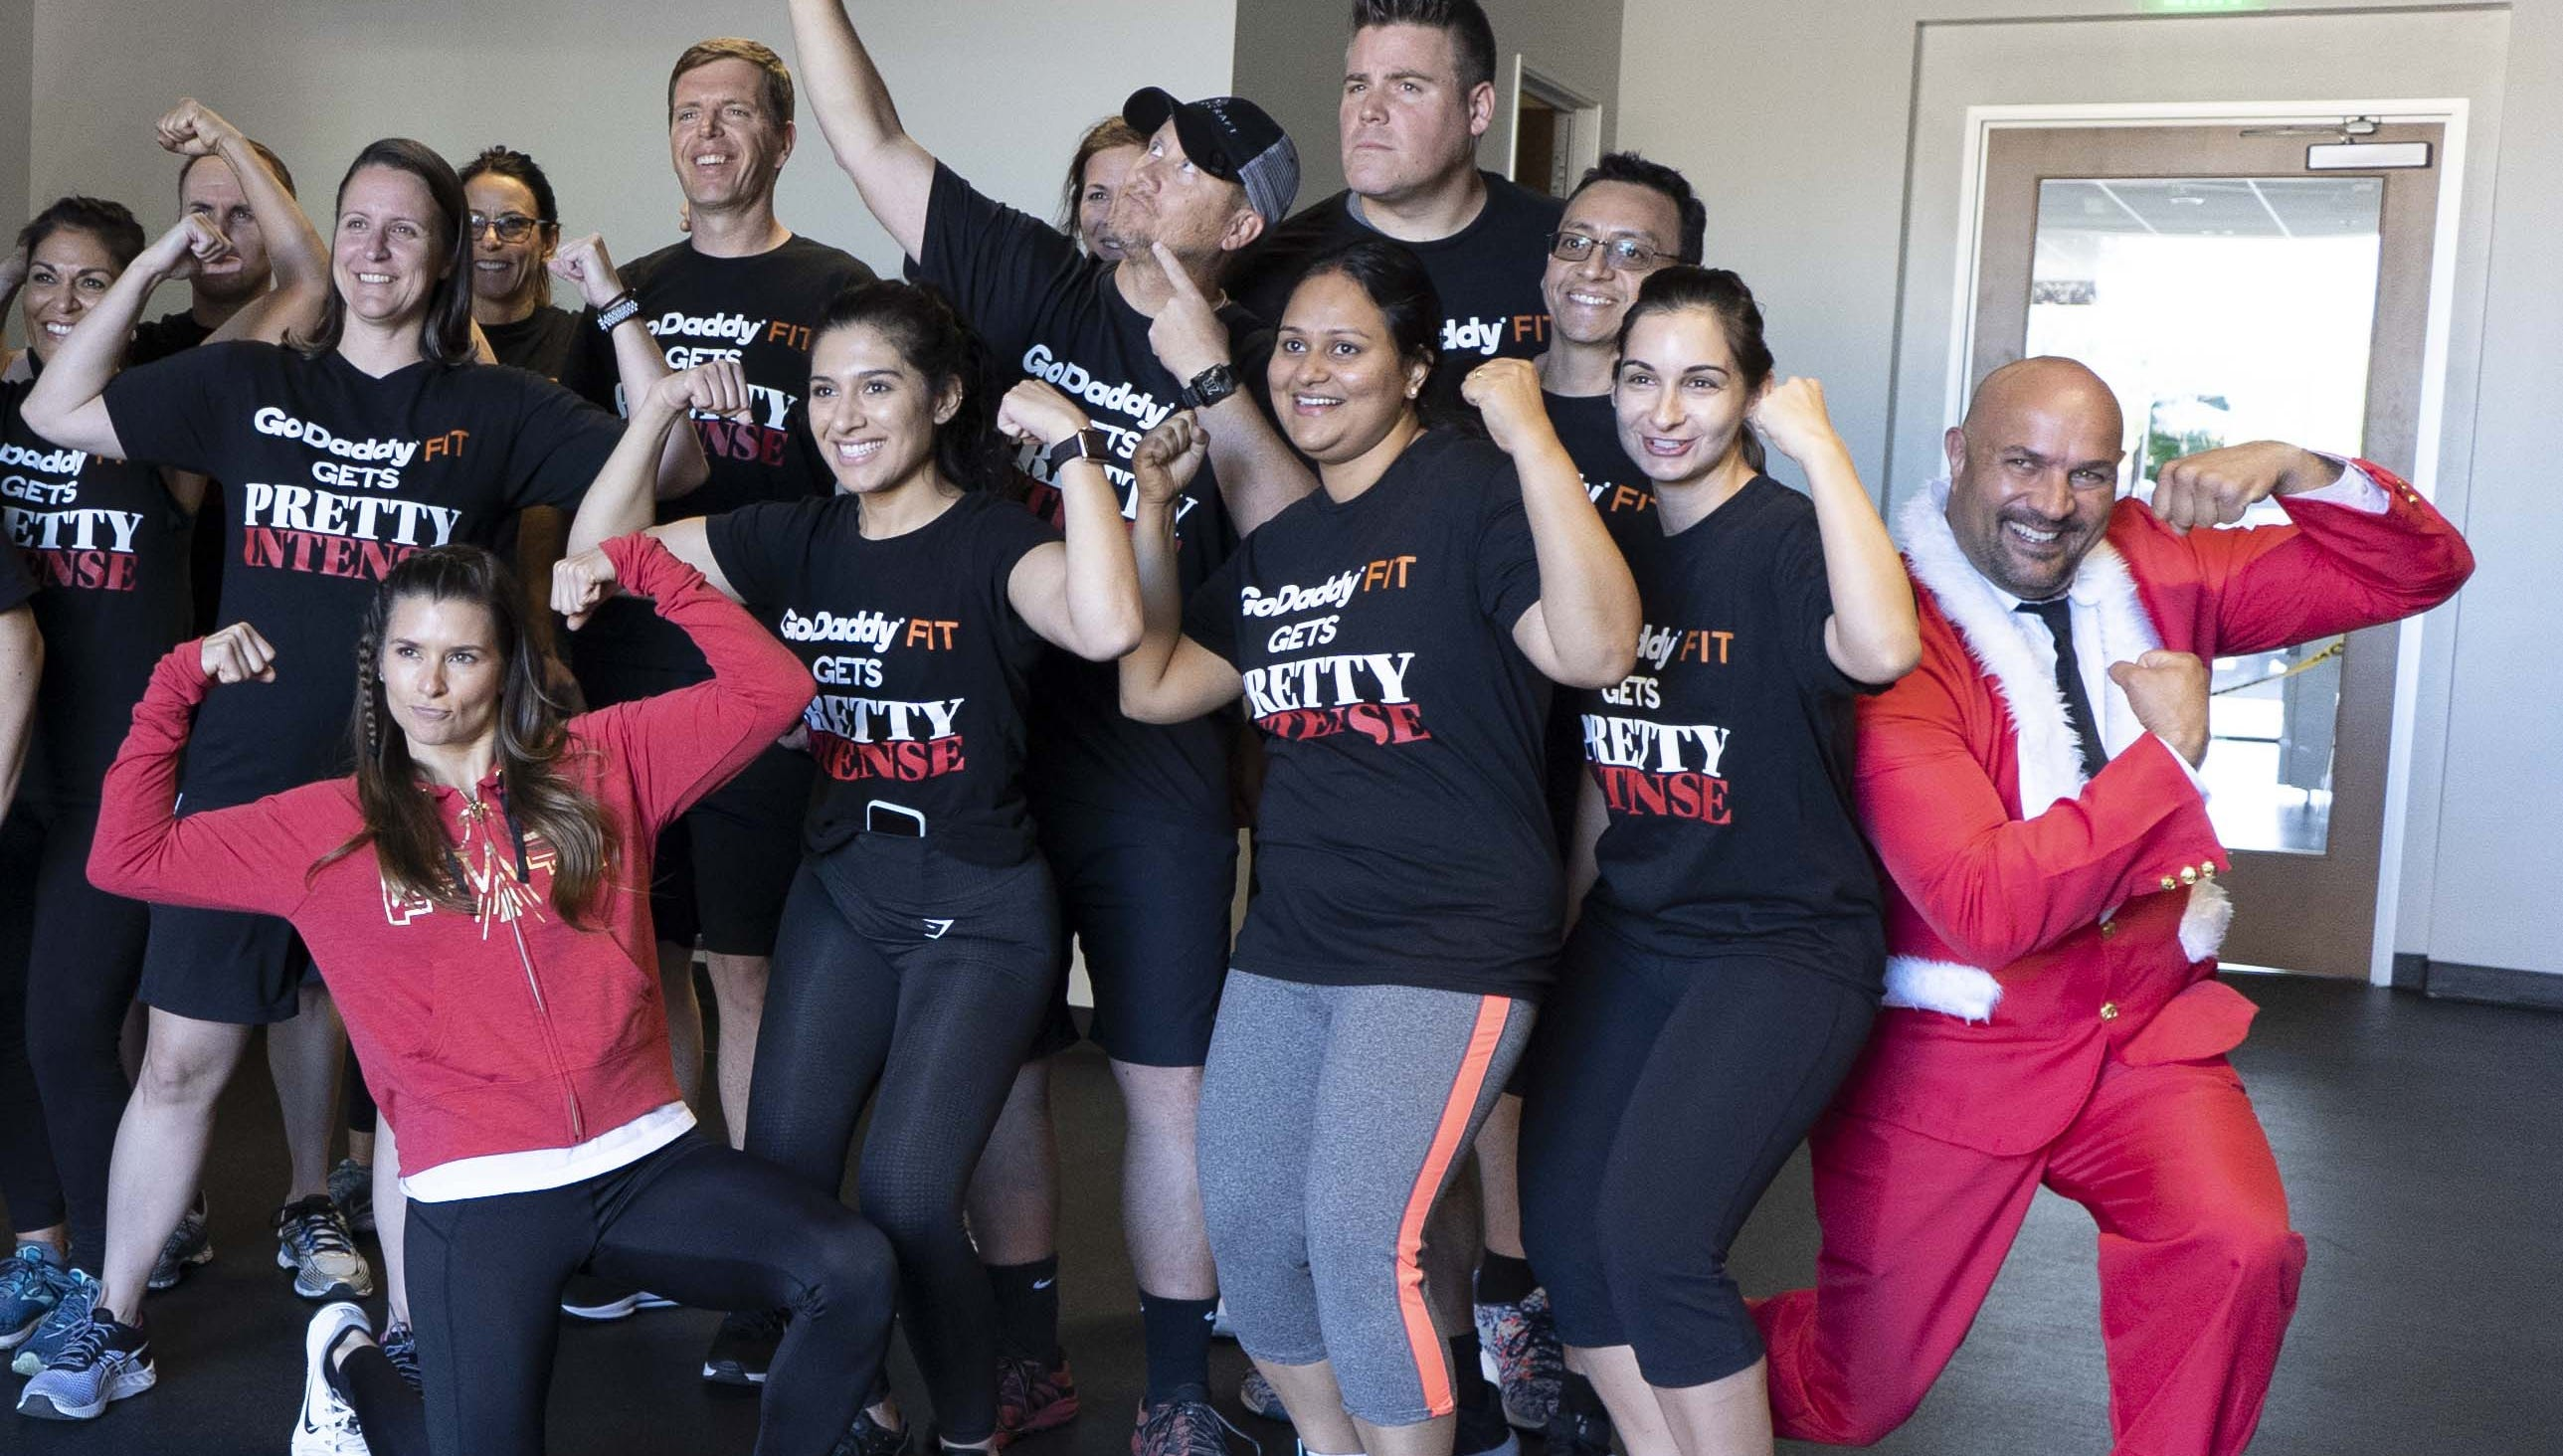 Racing legend Danica Patrick exercises with GoDaddy workers